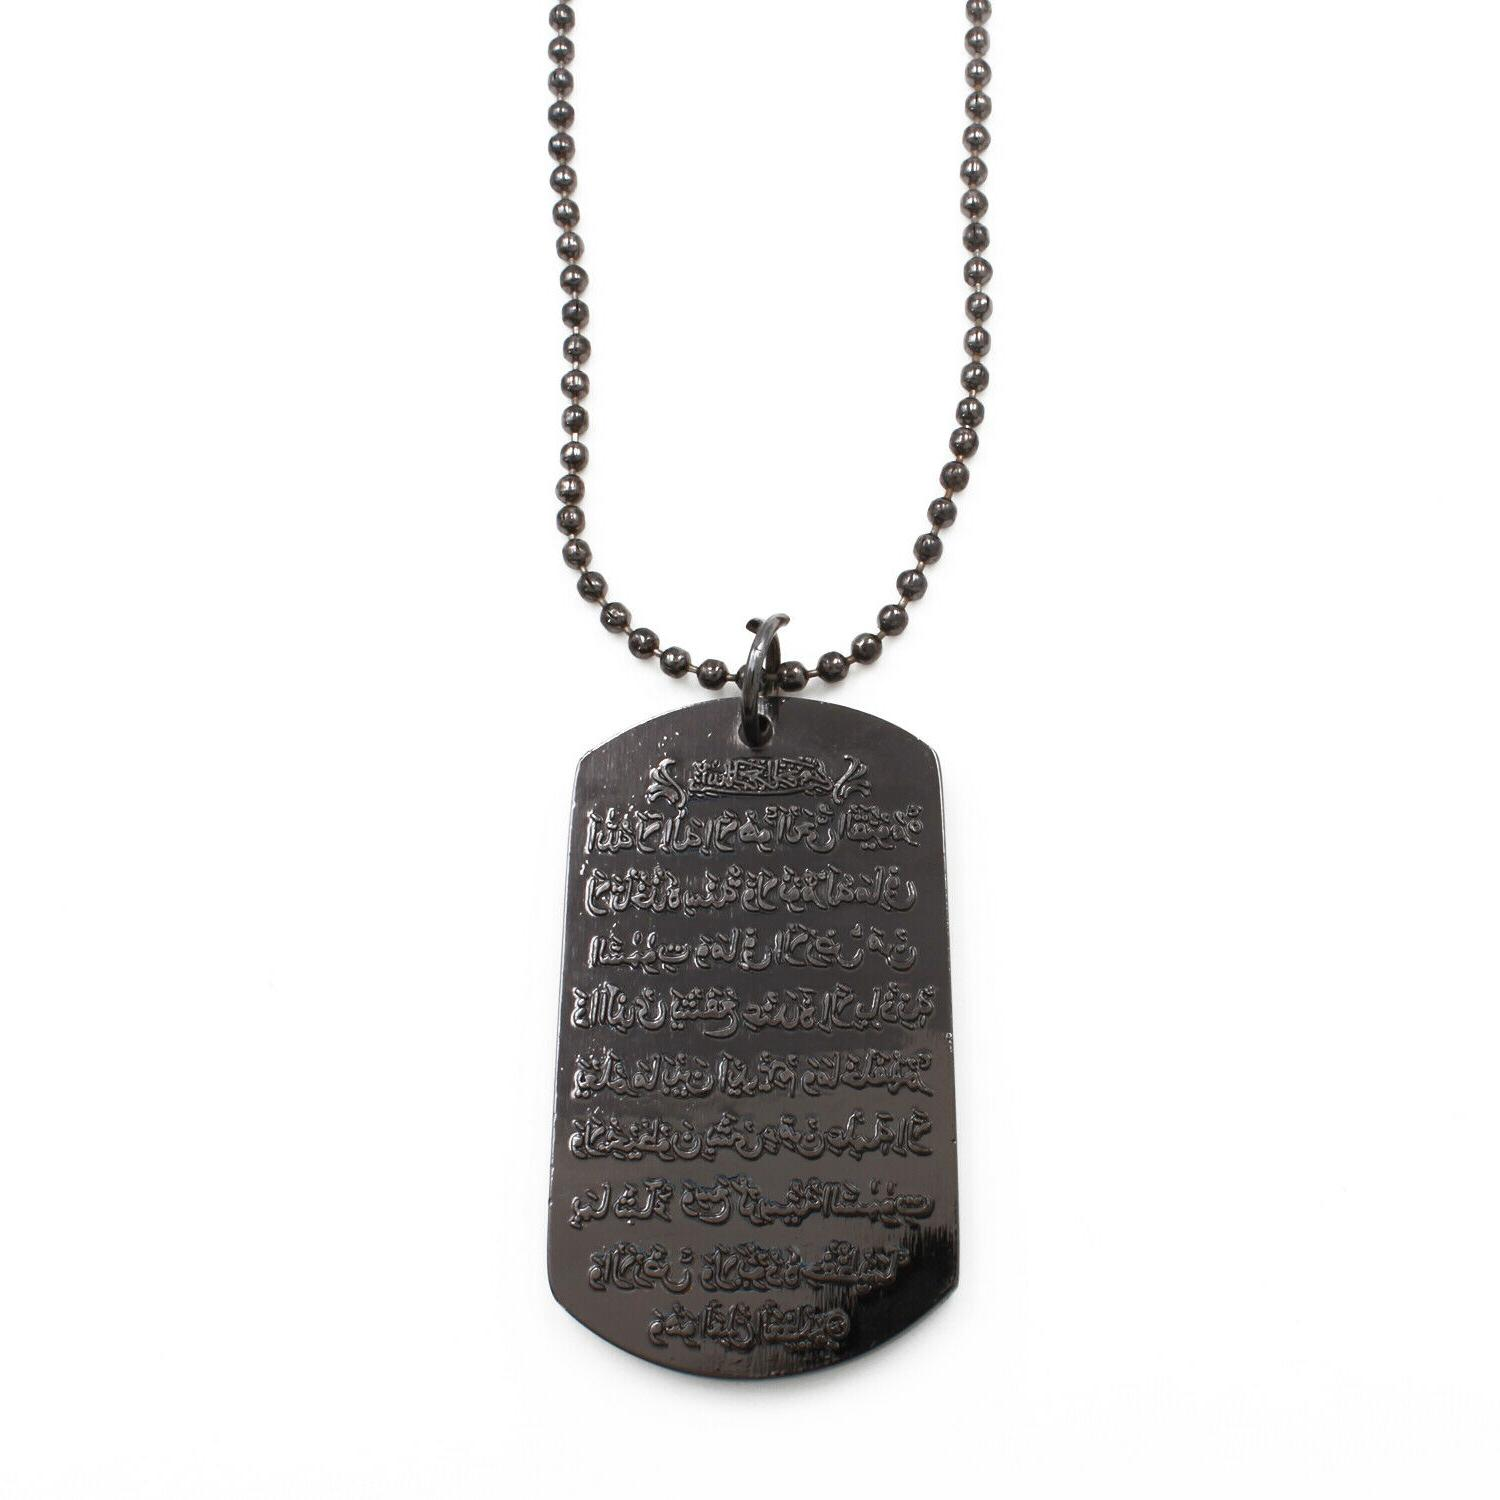 REHAN - Personalised Engraved Mens Necklace Chain Jewellery Gifts